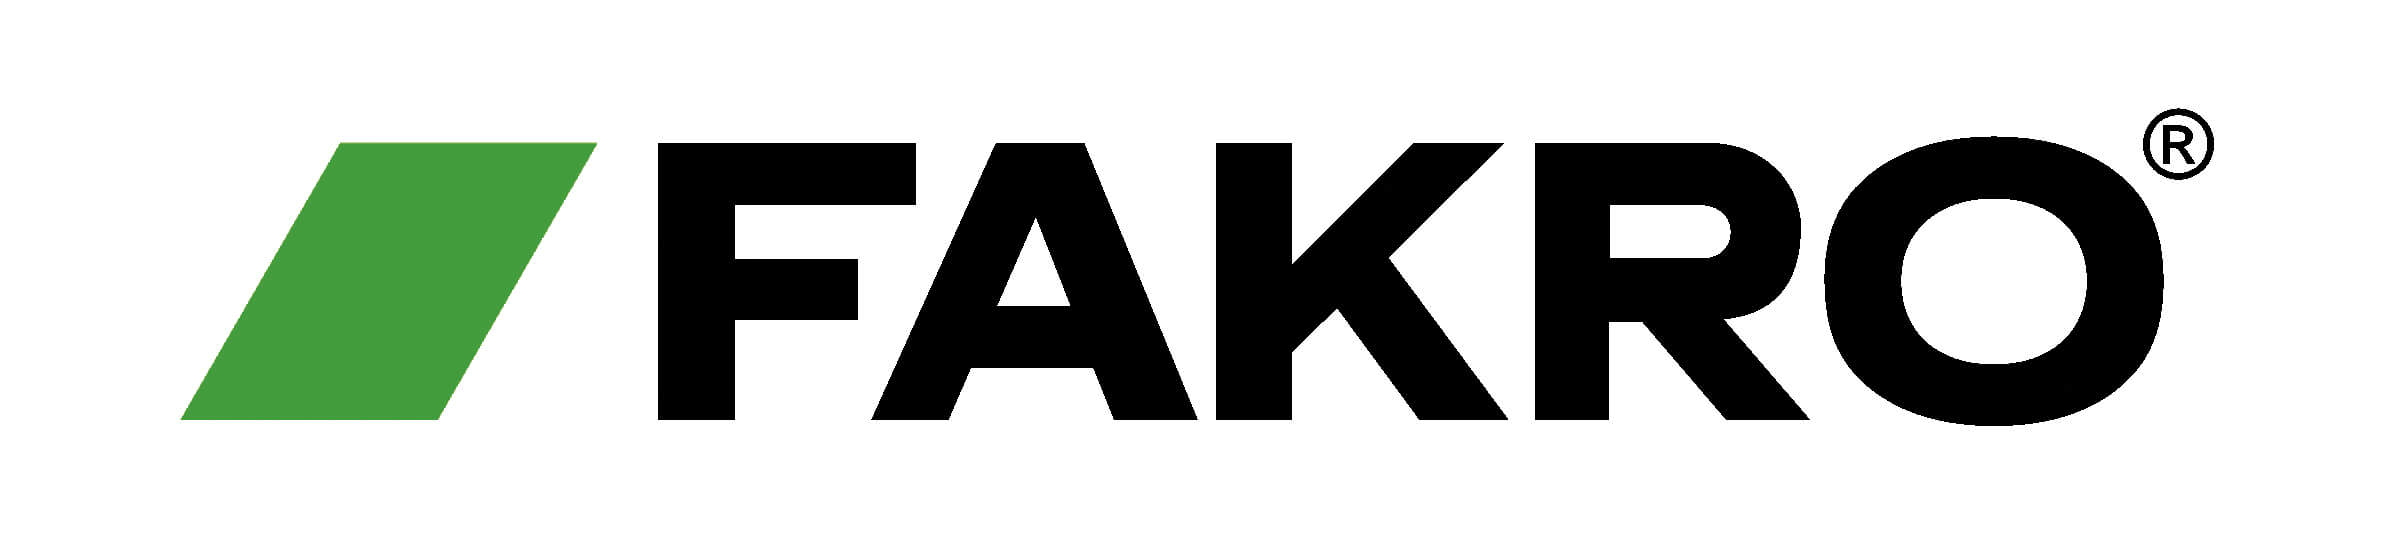 Fakro Logo Wallpaper